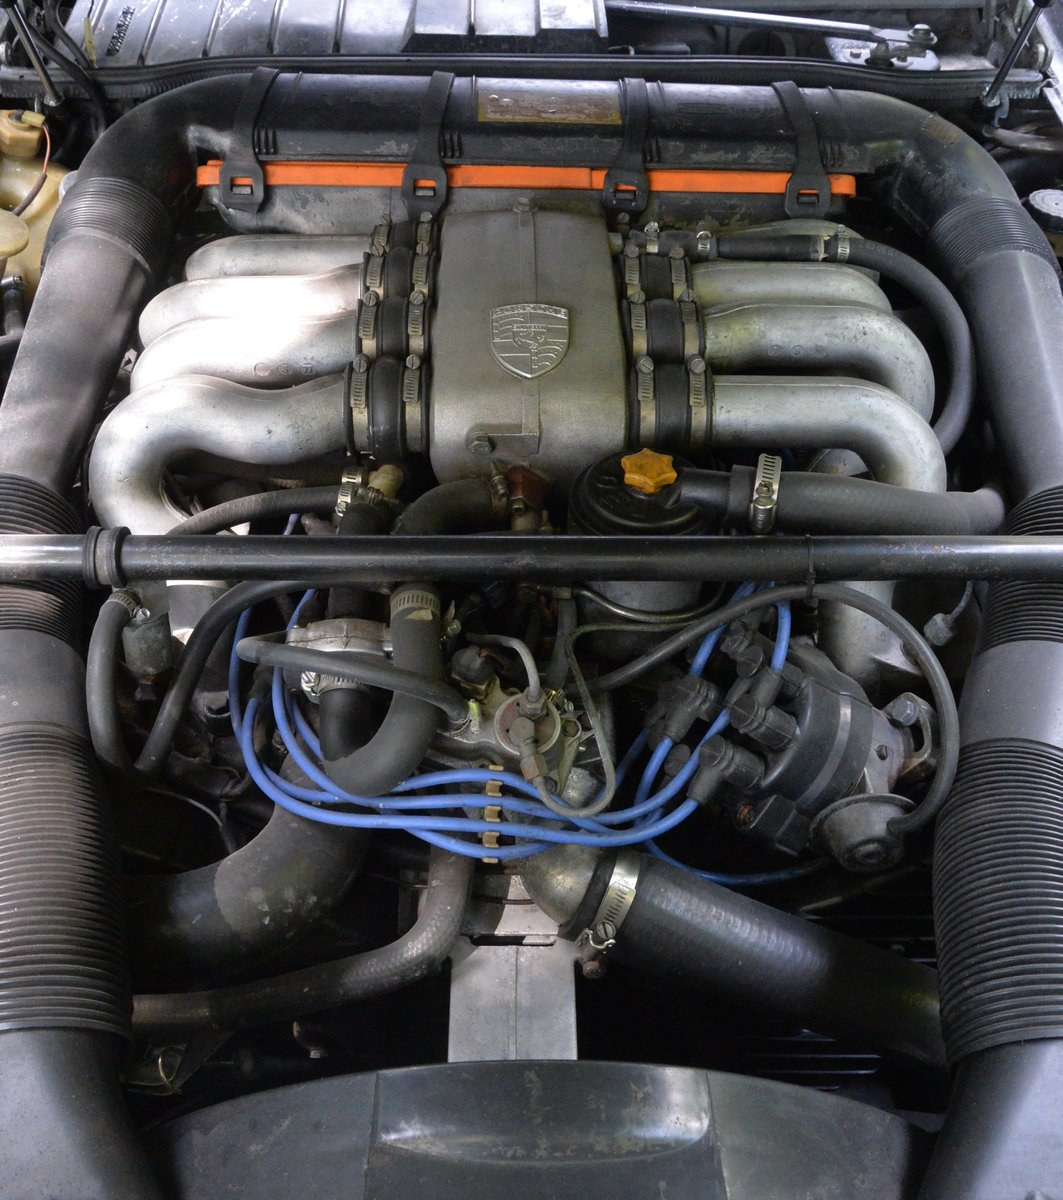 1978 Porsche 928, 5 speed manual (Historic status) For Sale (picture 3 of 6)